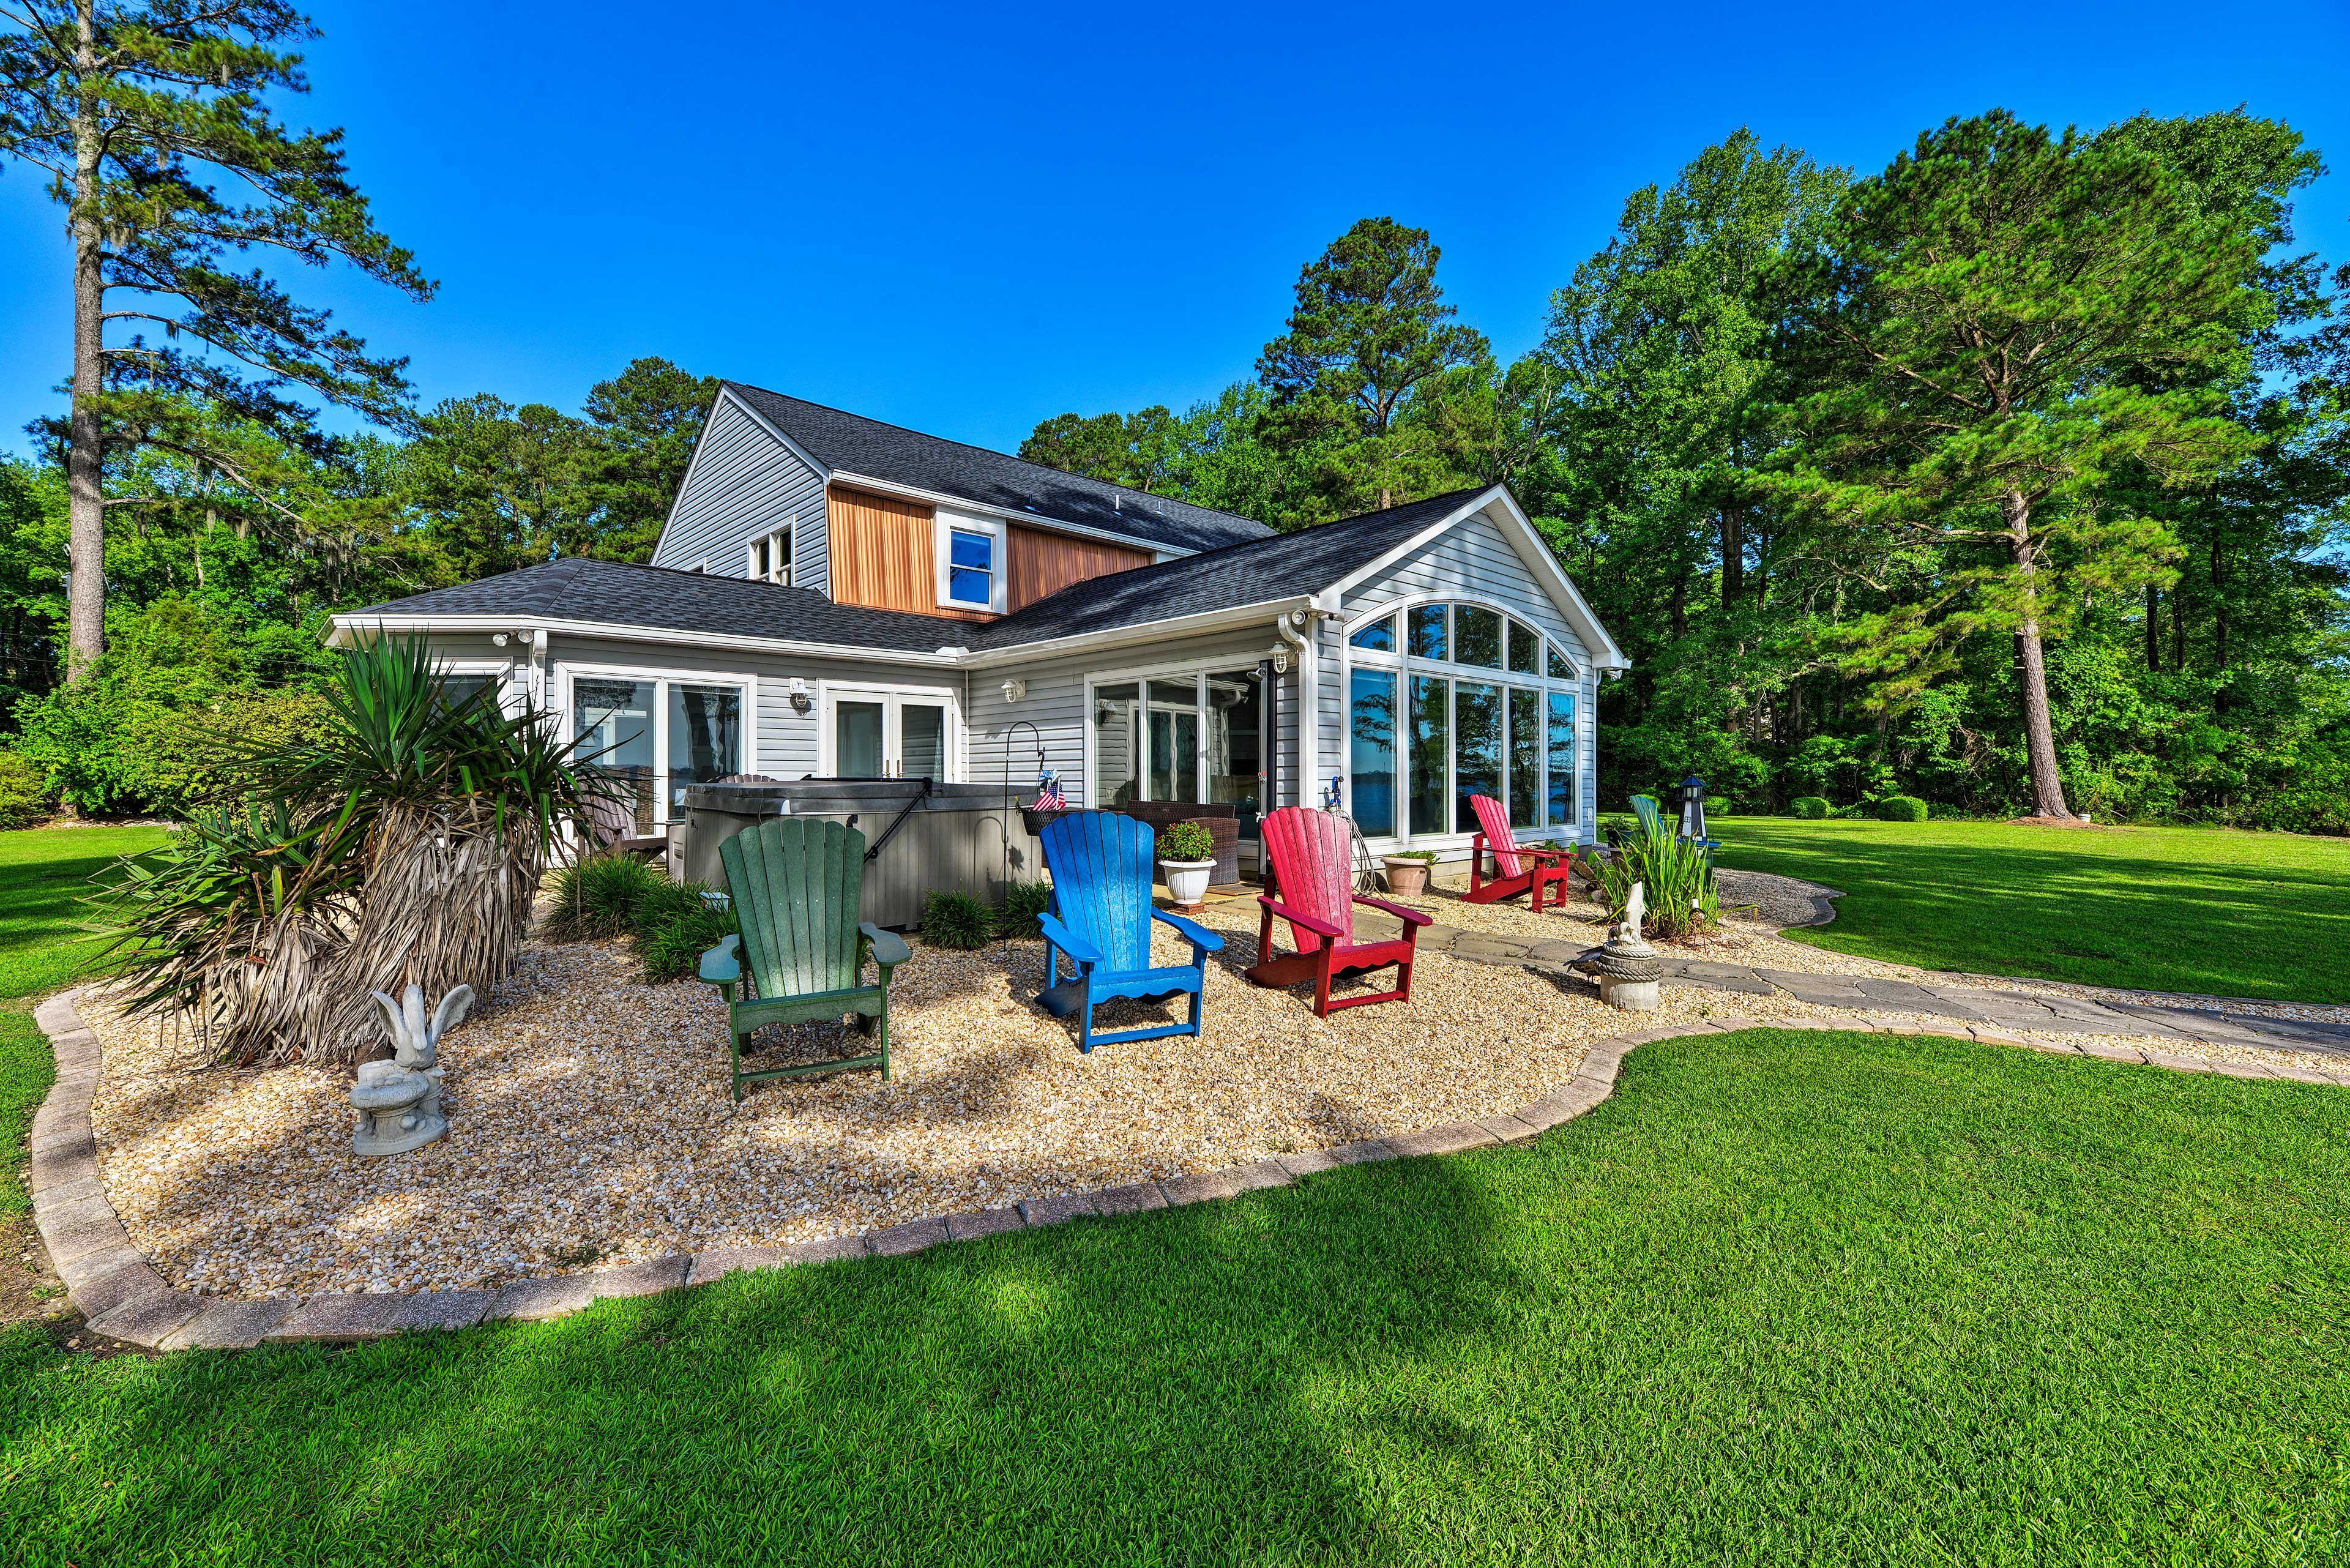 Get ready for a trip of a lifetime at this vacation rental home in Blounts Creek